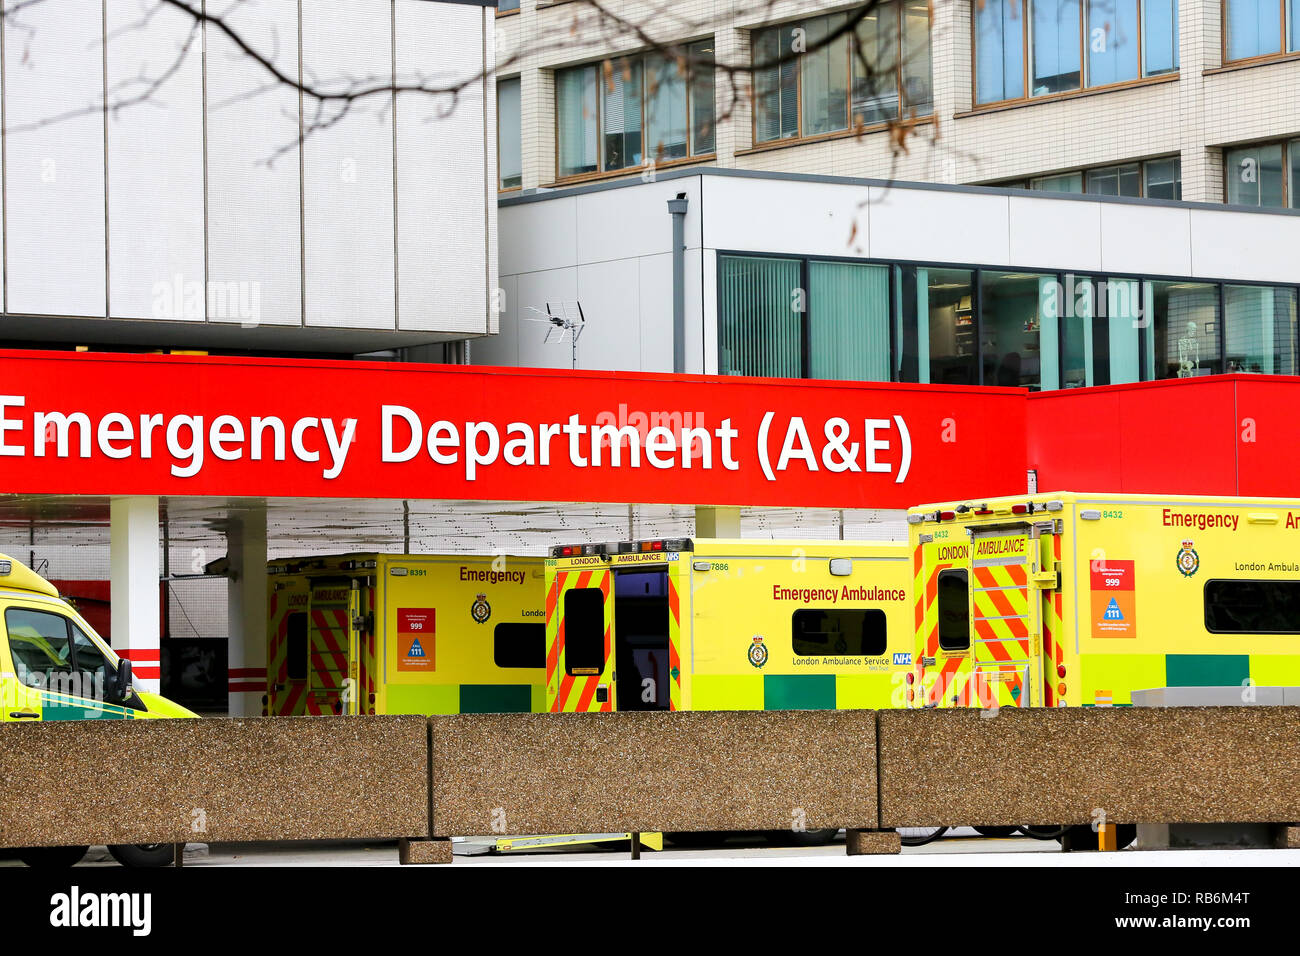 January 7, 2019 - London, United Kingdom - Ambulances are seen parked outside an Emergency Department (A&E) at the  hospital in Westminster. (Credit Image: © Dinendra Haria/SOPA Images via ZUMA Wire) - Stock Image